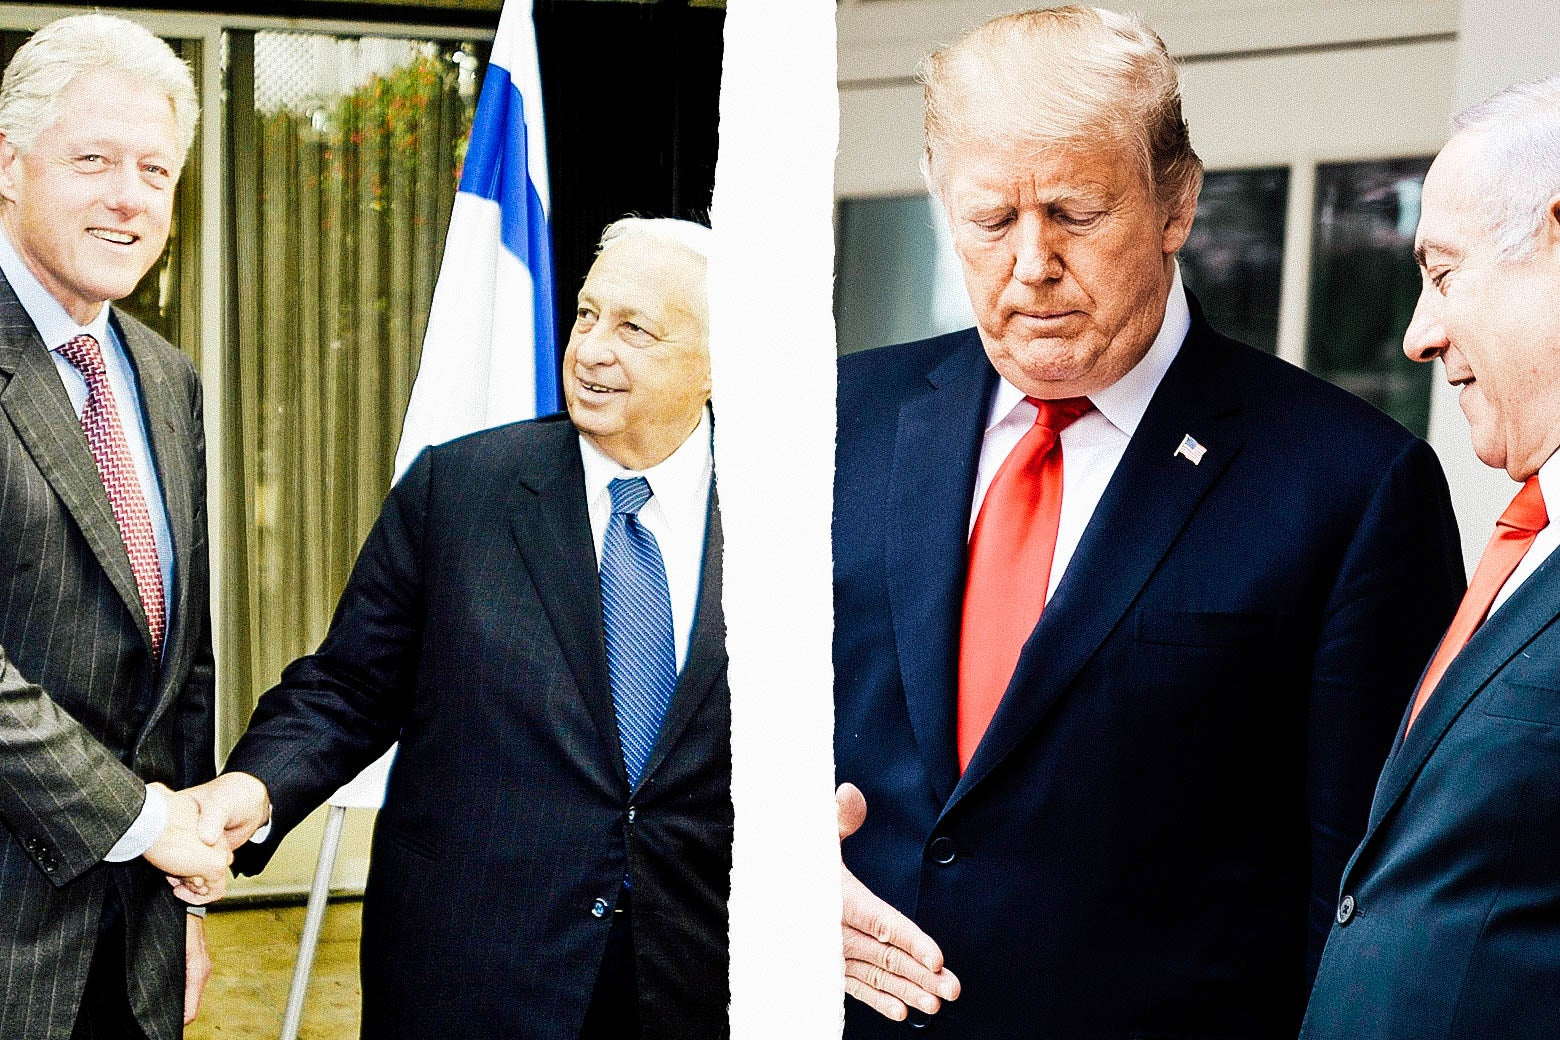 Bill Clinton with former Israel Prime Minister Ariel Sharon in 2000 and Donald Trump with Benjamin Netanyahu in 2019.